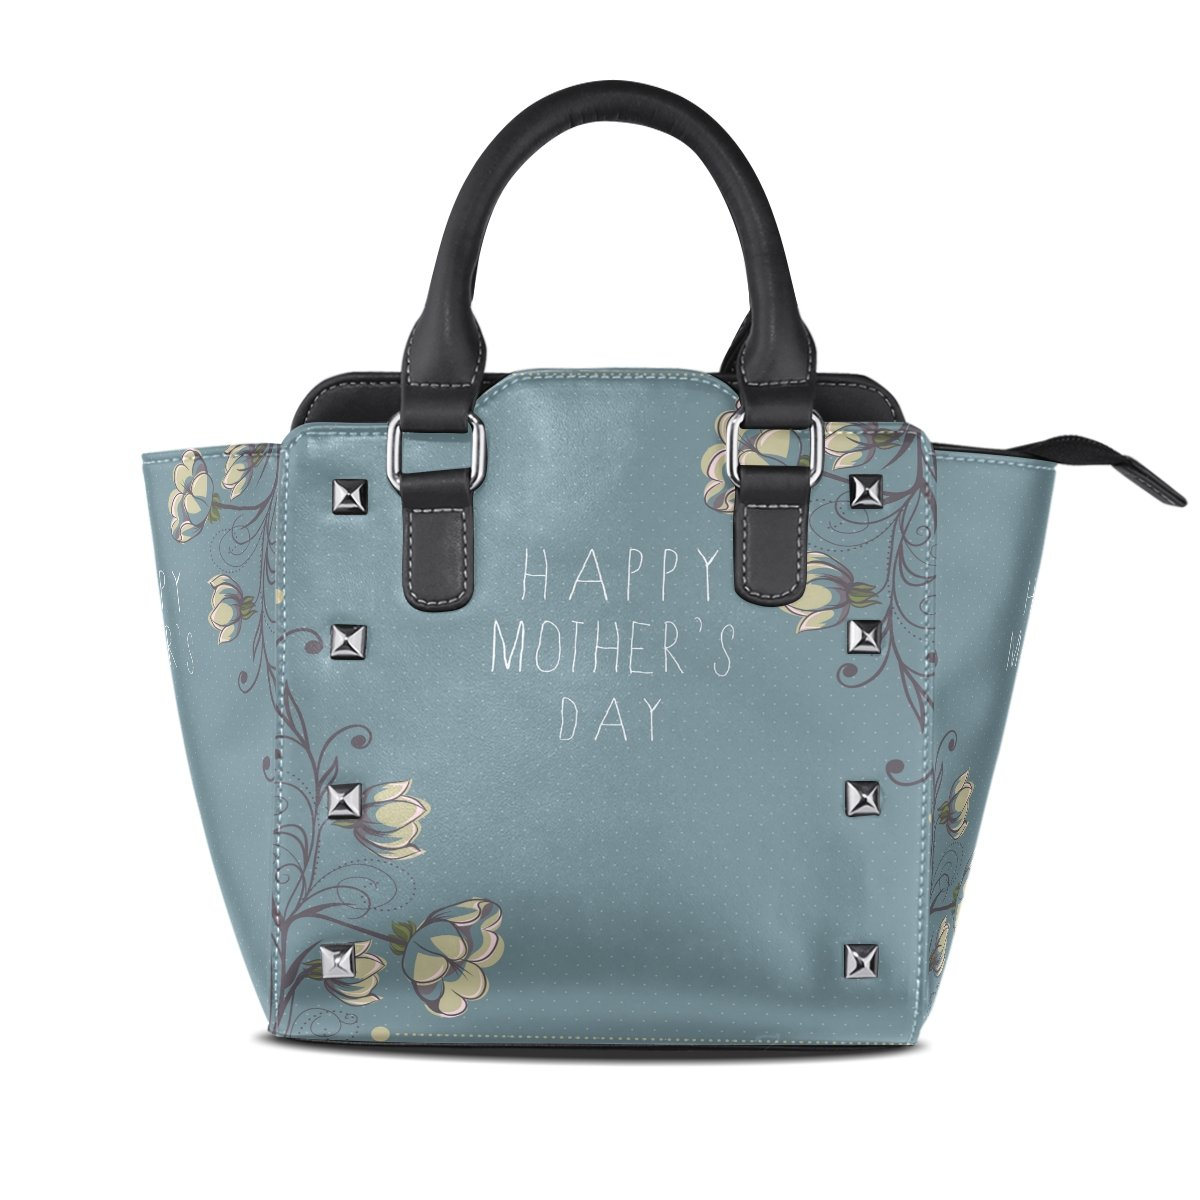 Womens Genuine Leather Hangbags Tote Bags bluee Flowers Purse Shoulder Bags